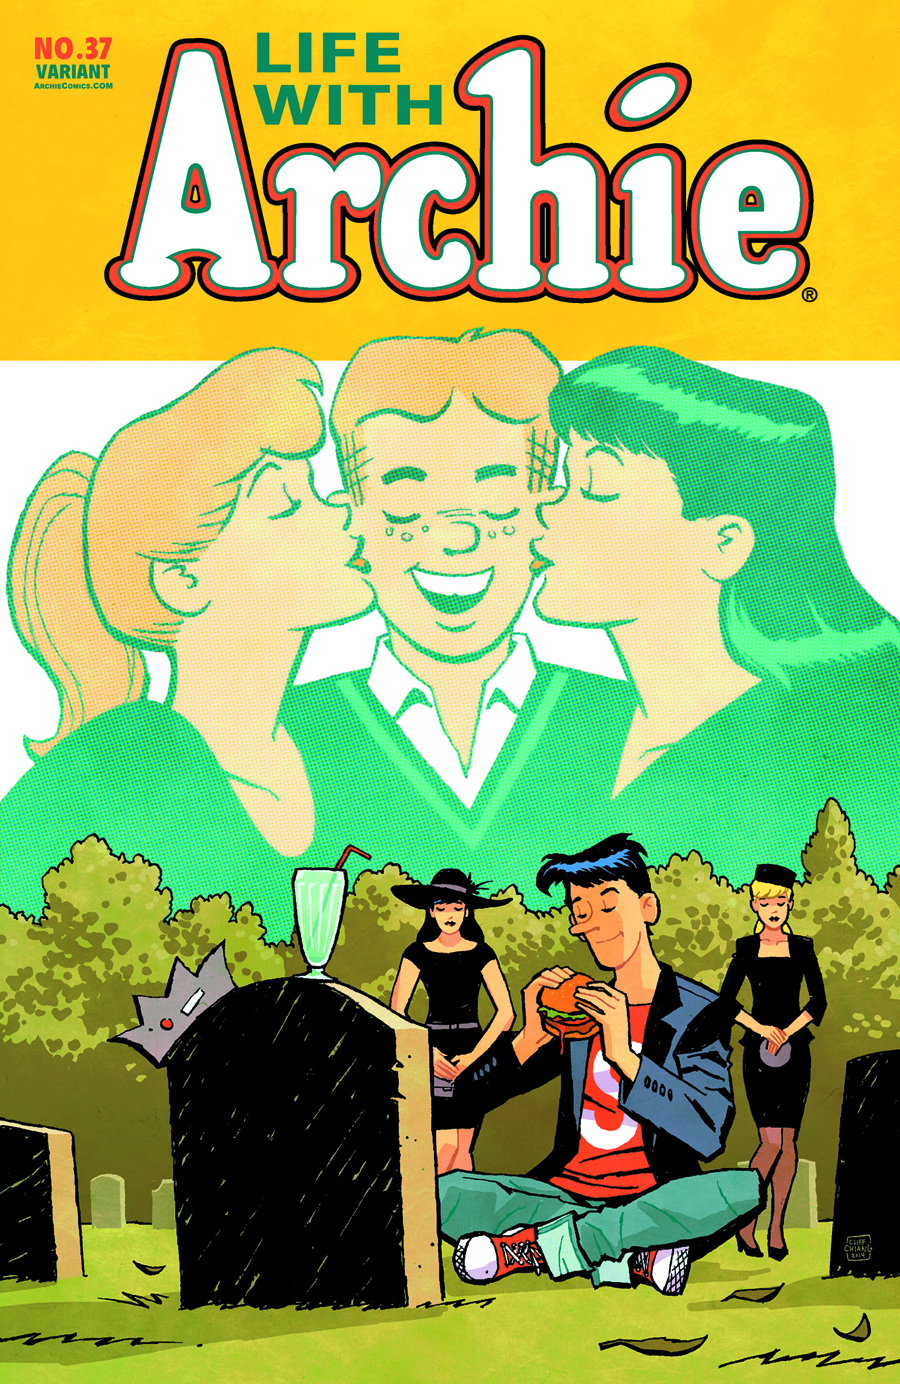 LIFE WITH ARCHIE COMIC #37 CLIFF CHIANG CVR